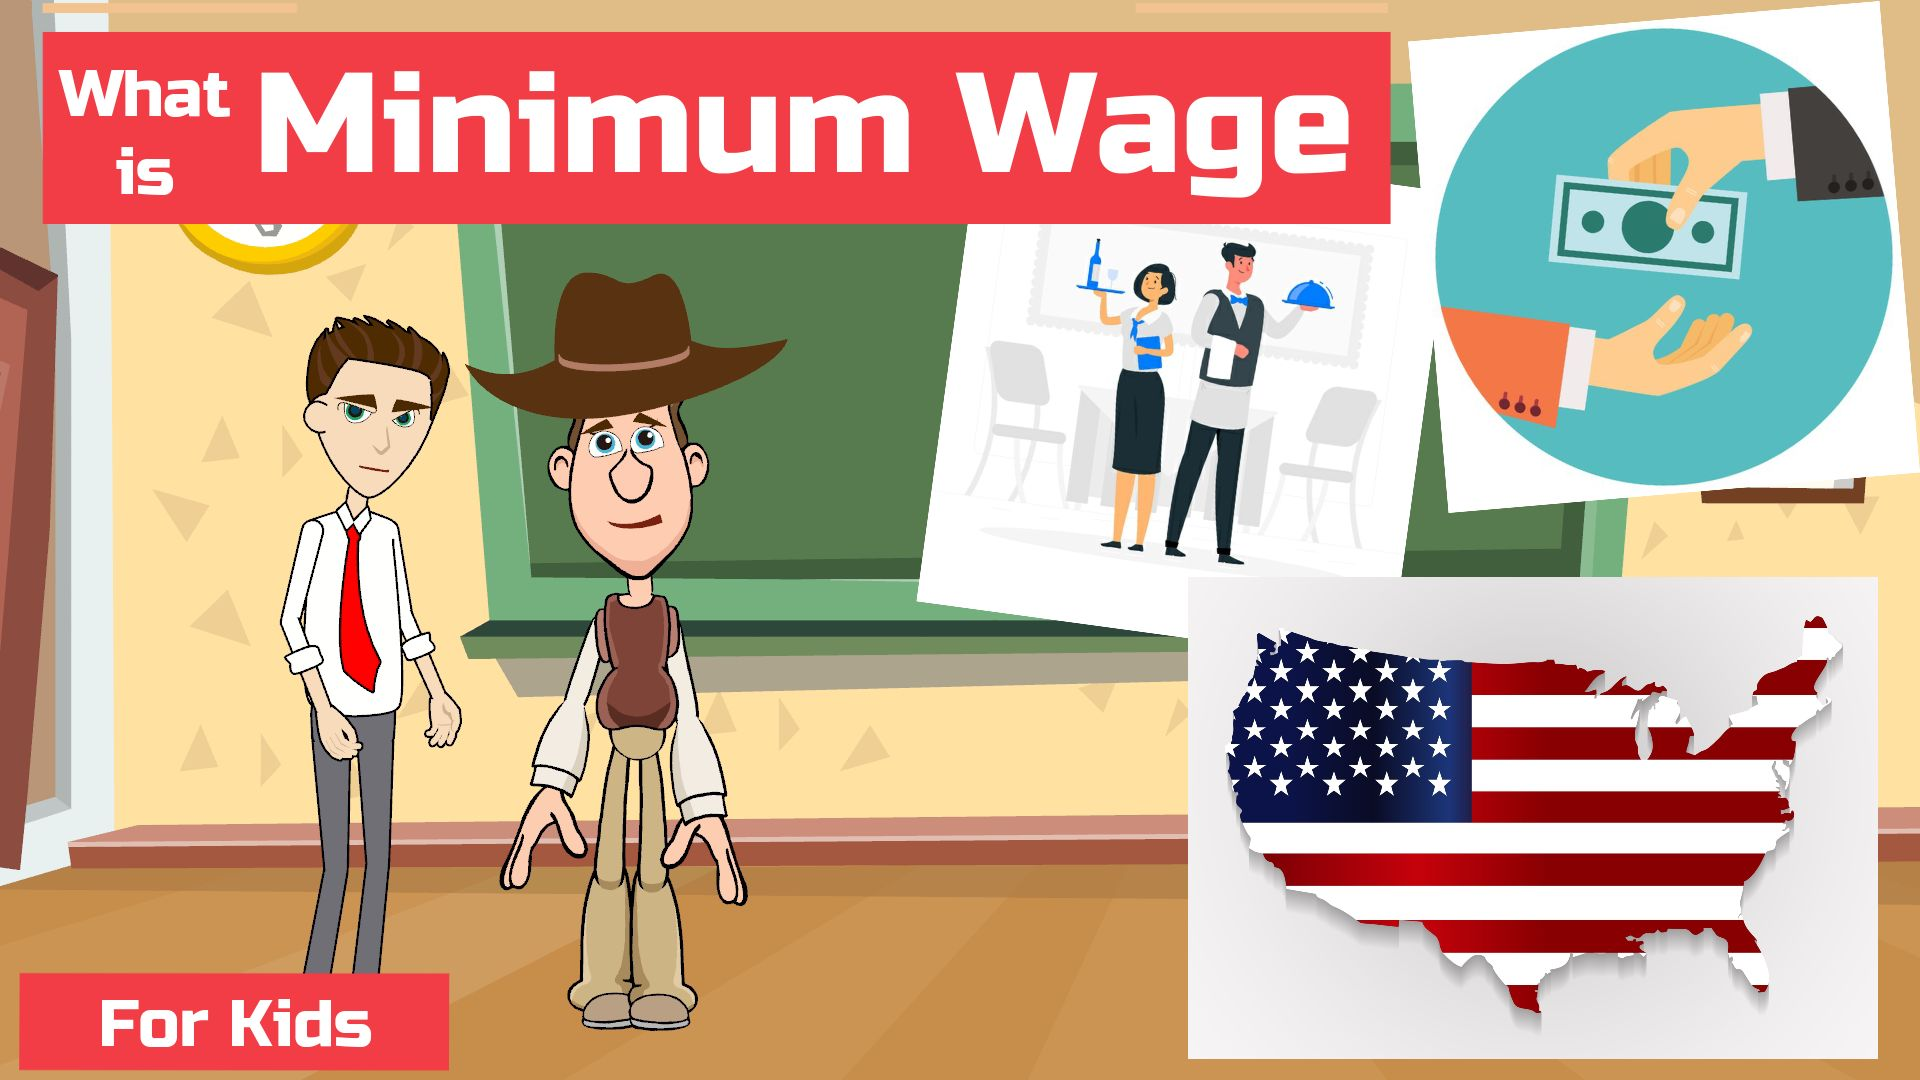 What is Minimum Wage